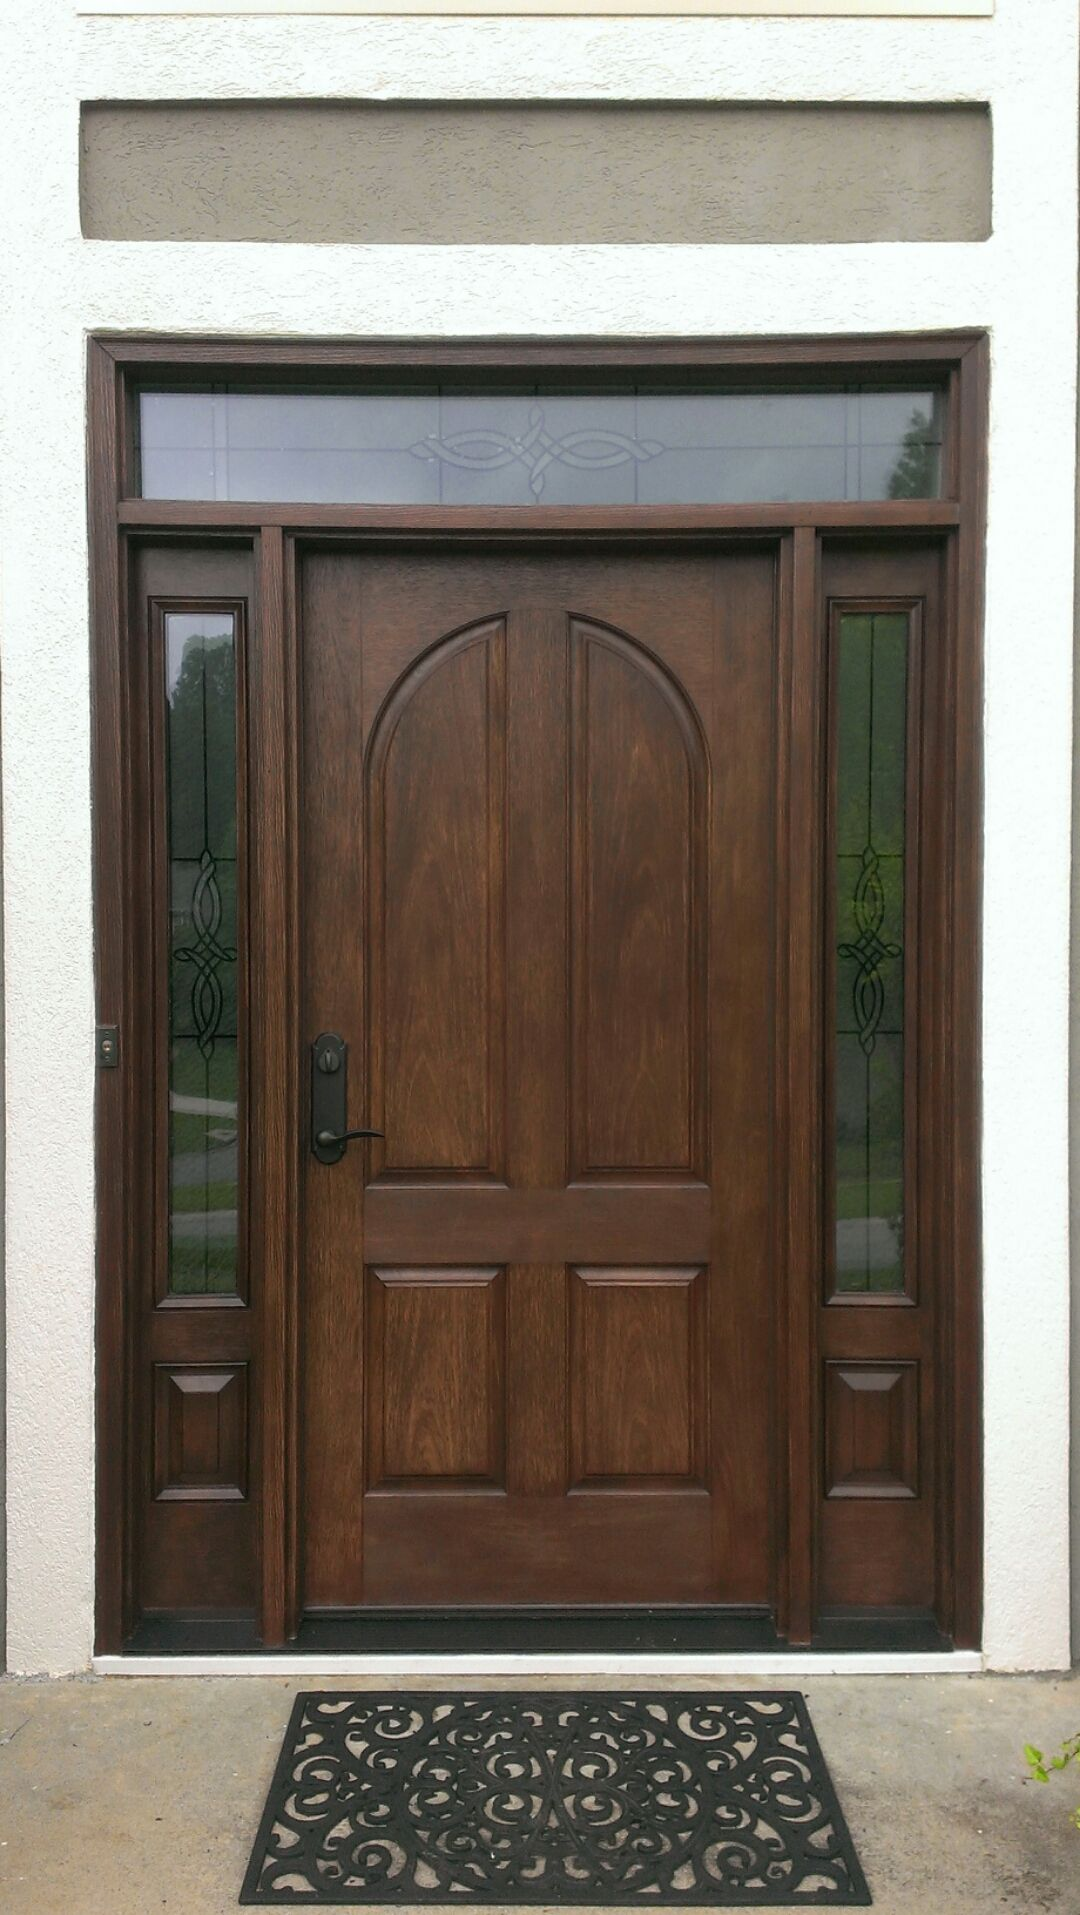 New therma tru classic craft door with longford glass for Therma tru front door